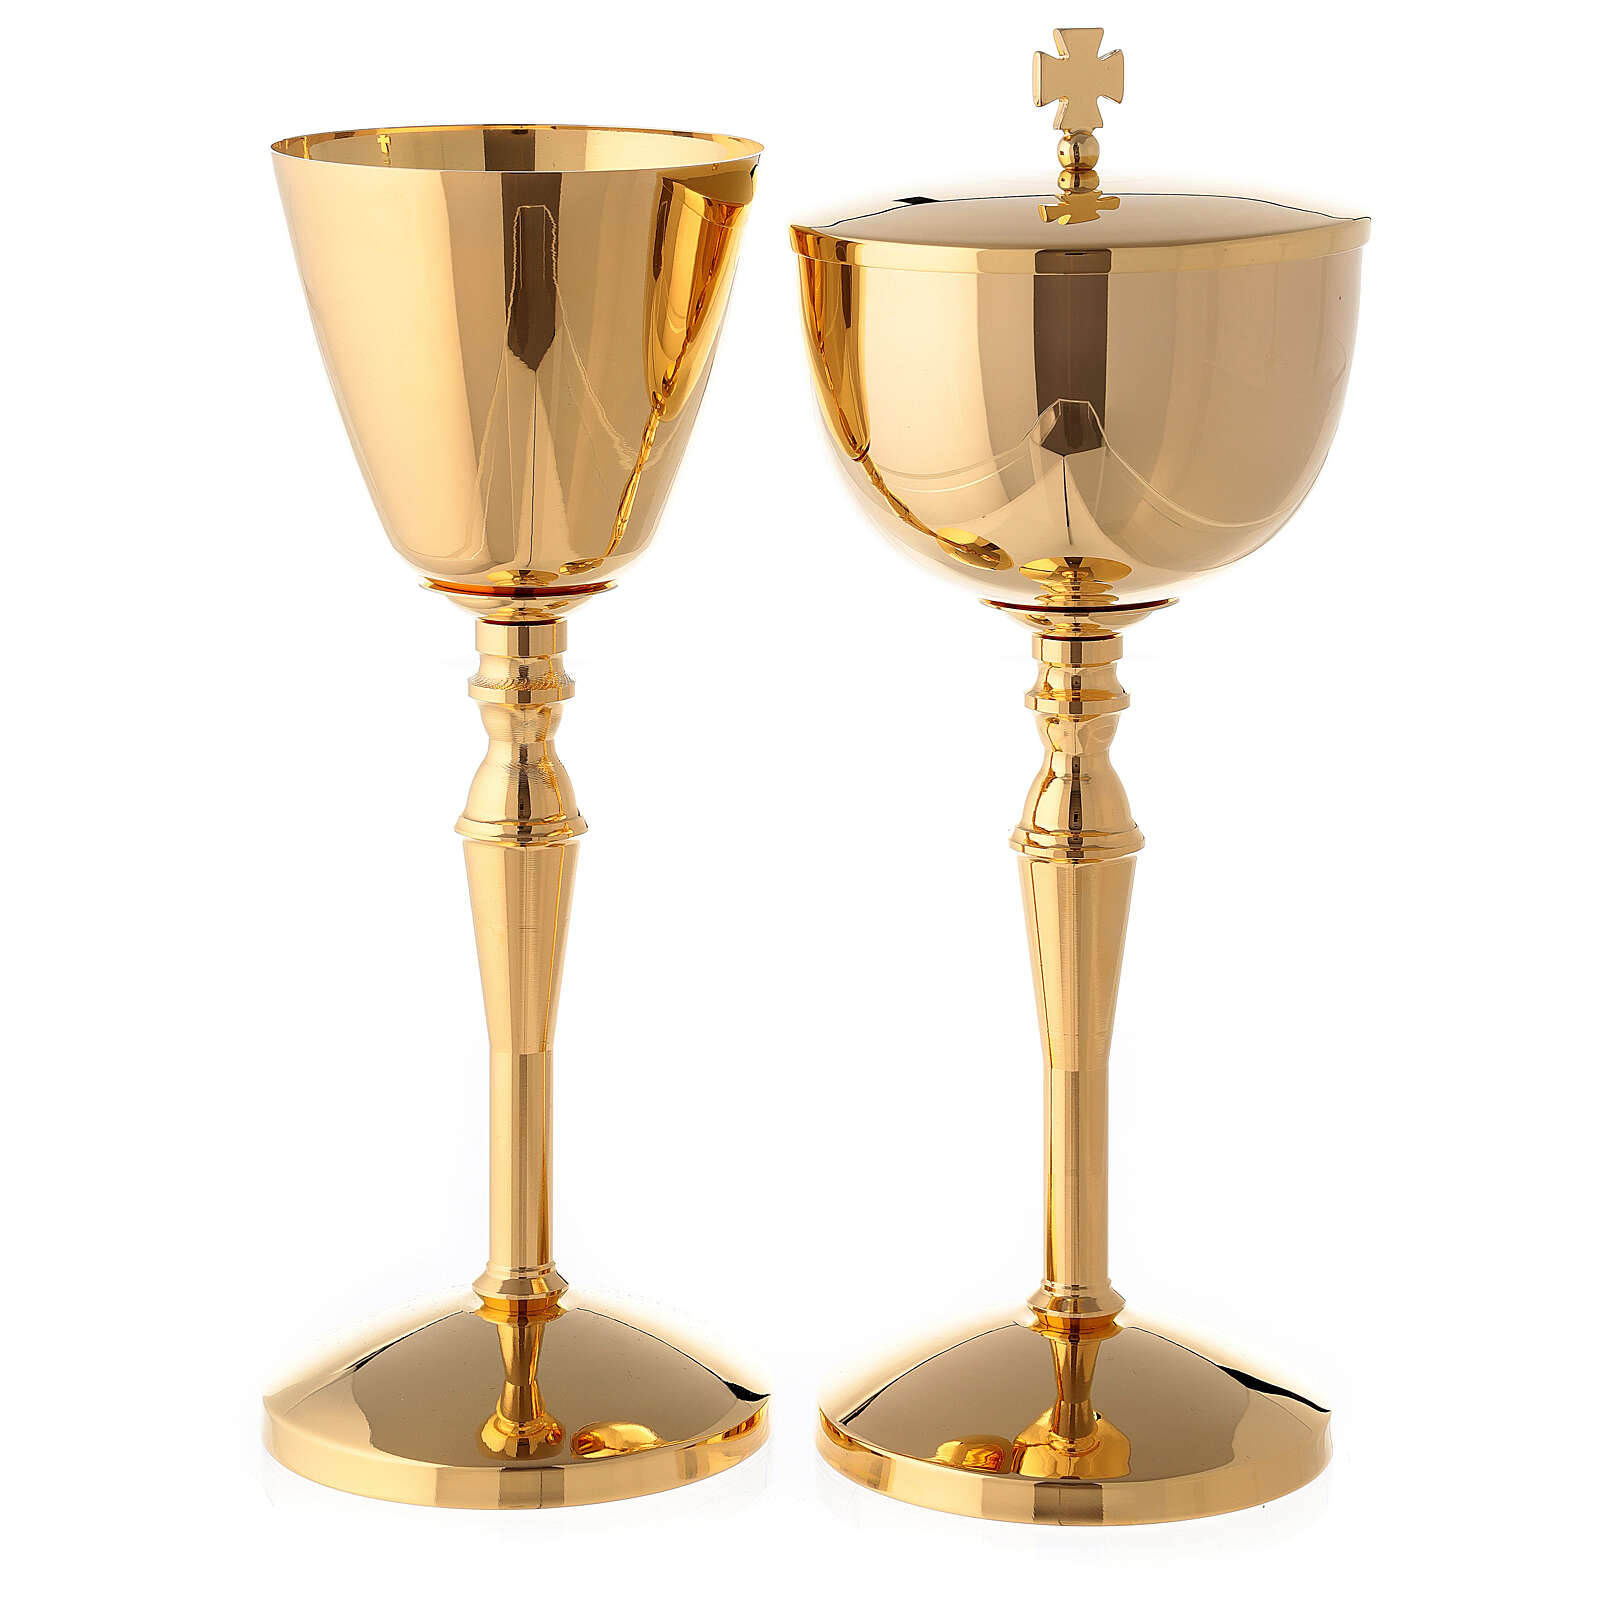 Gold plated brass chalice and ciborium with casted column-shaped node 4